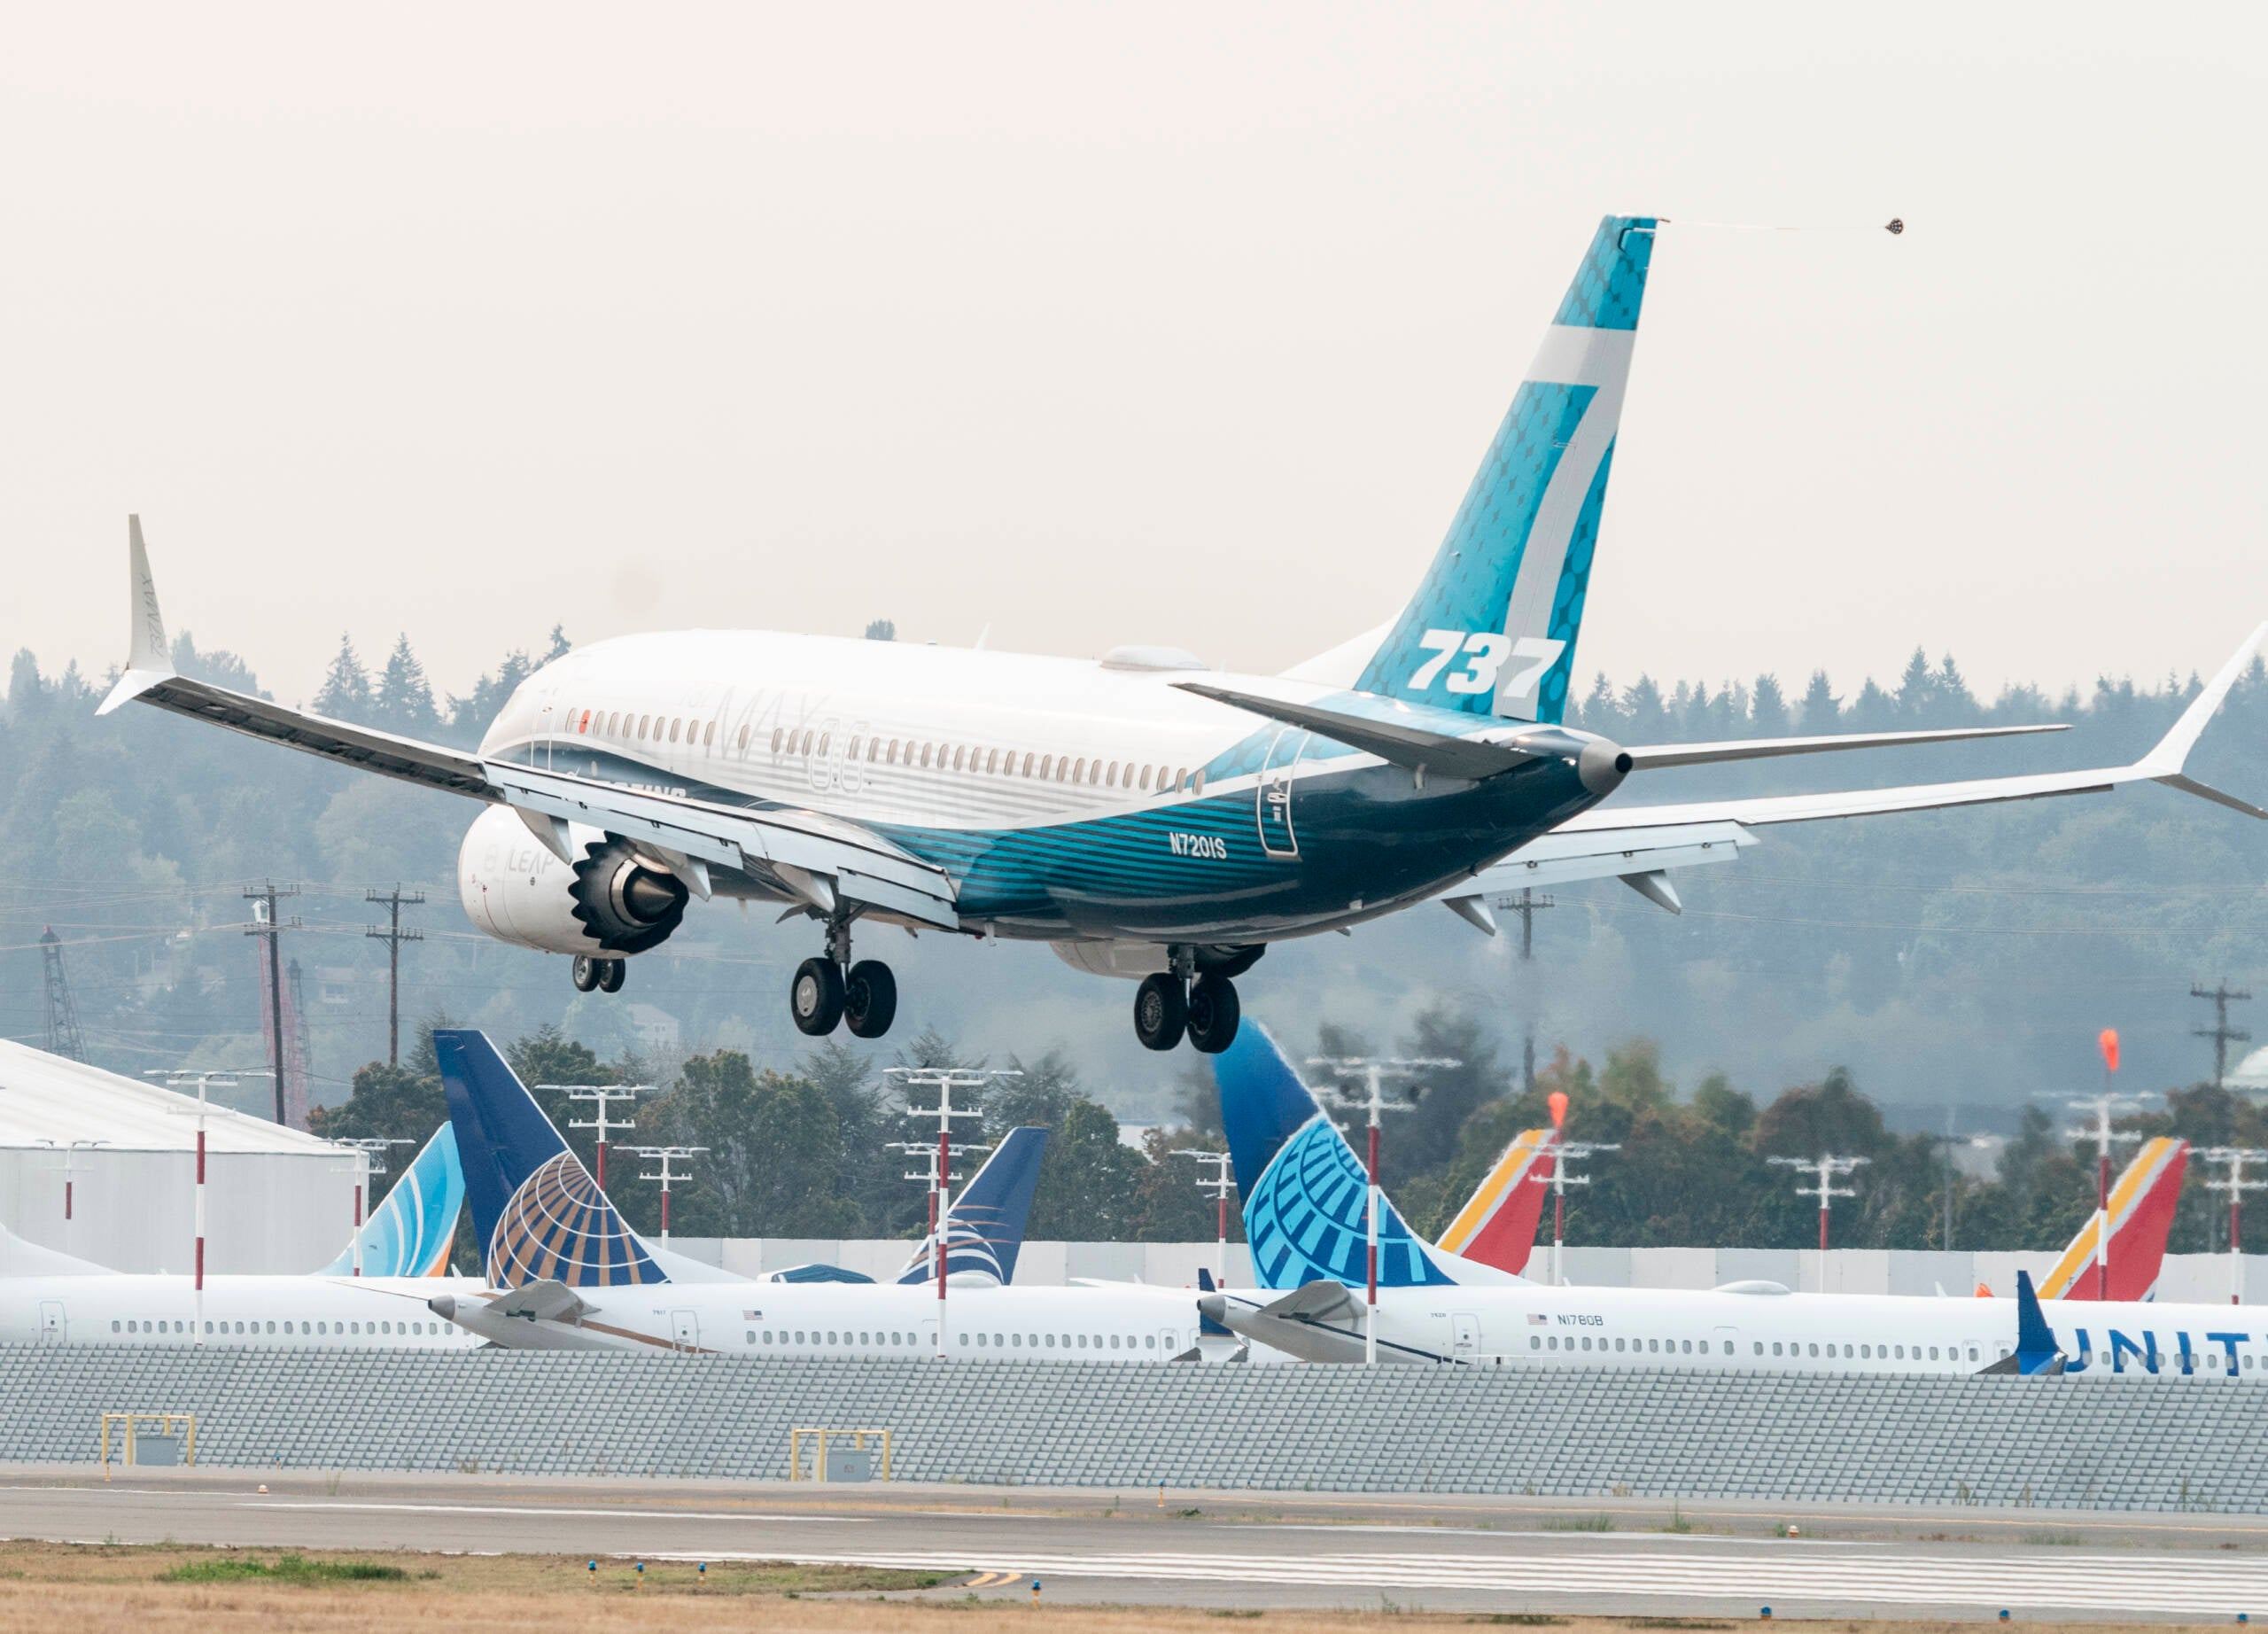 FAA re-certifies the Boeing 737 MAX after 20-month grounding